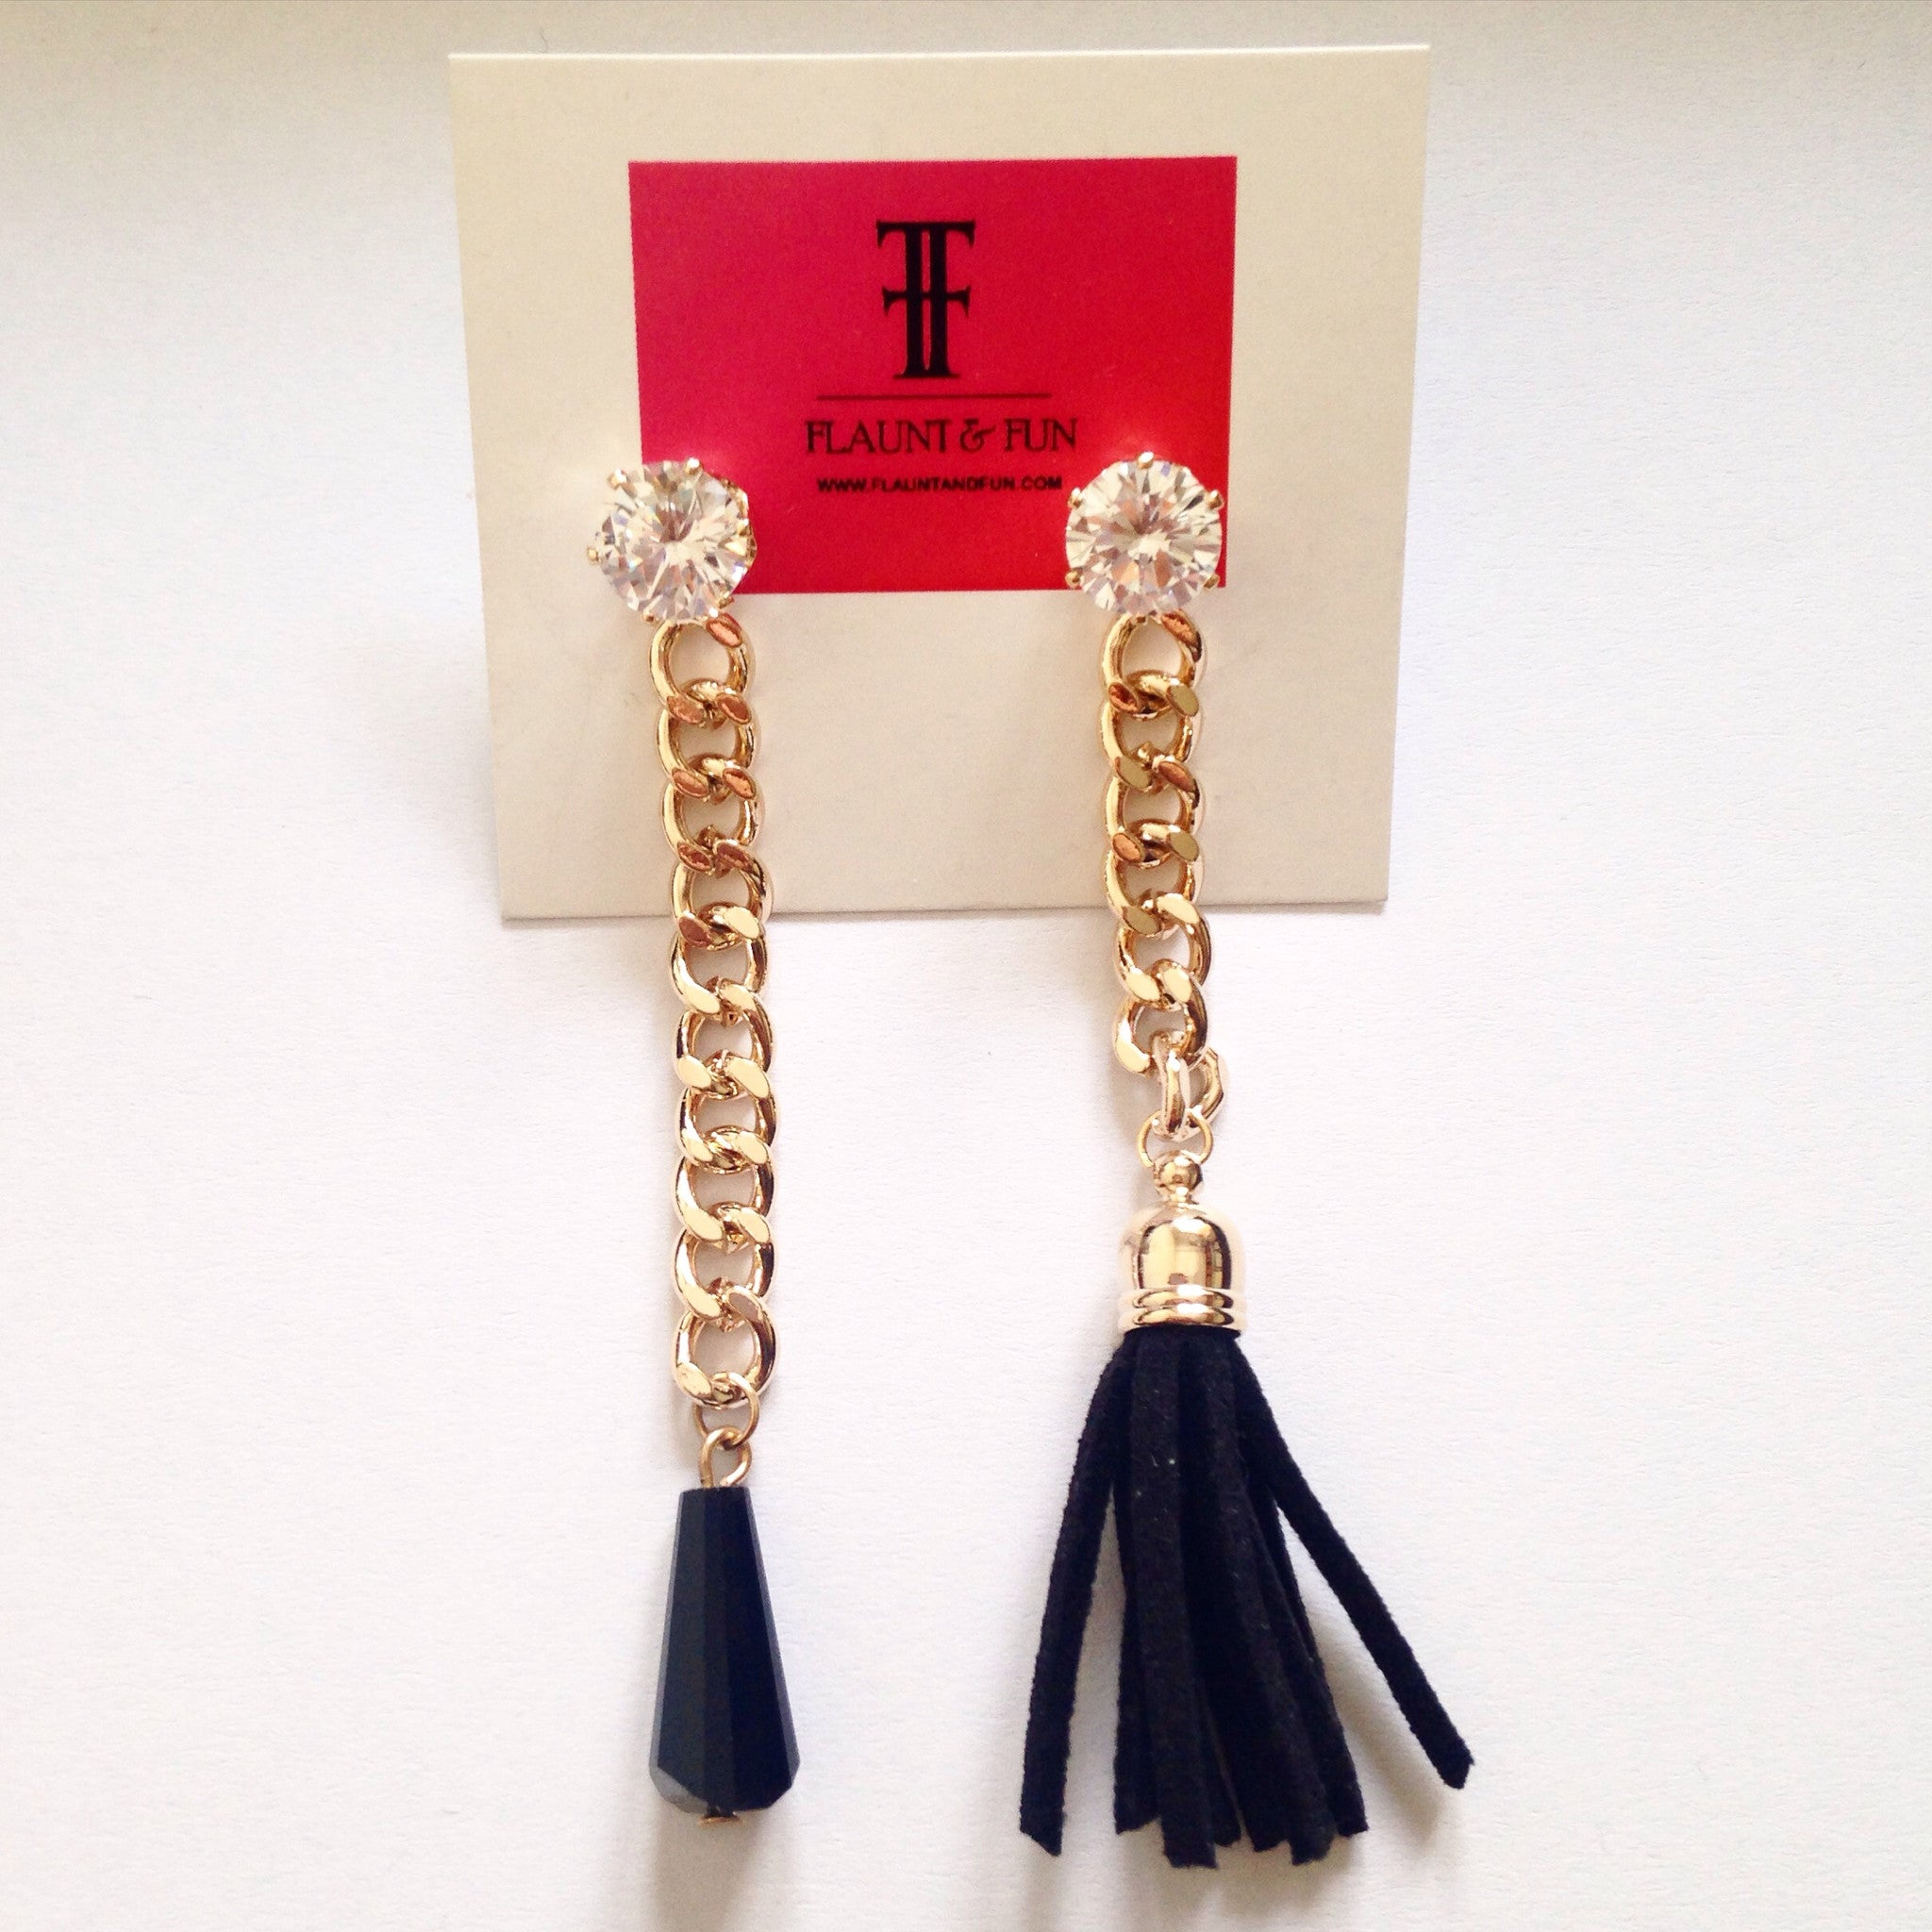 FRINGE CHAIN EARRINGS - Flauntandfun